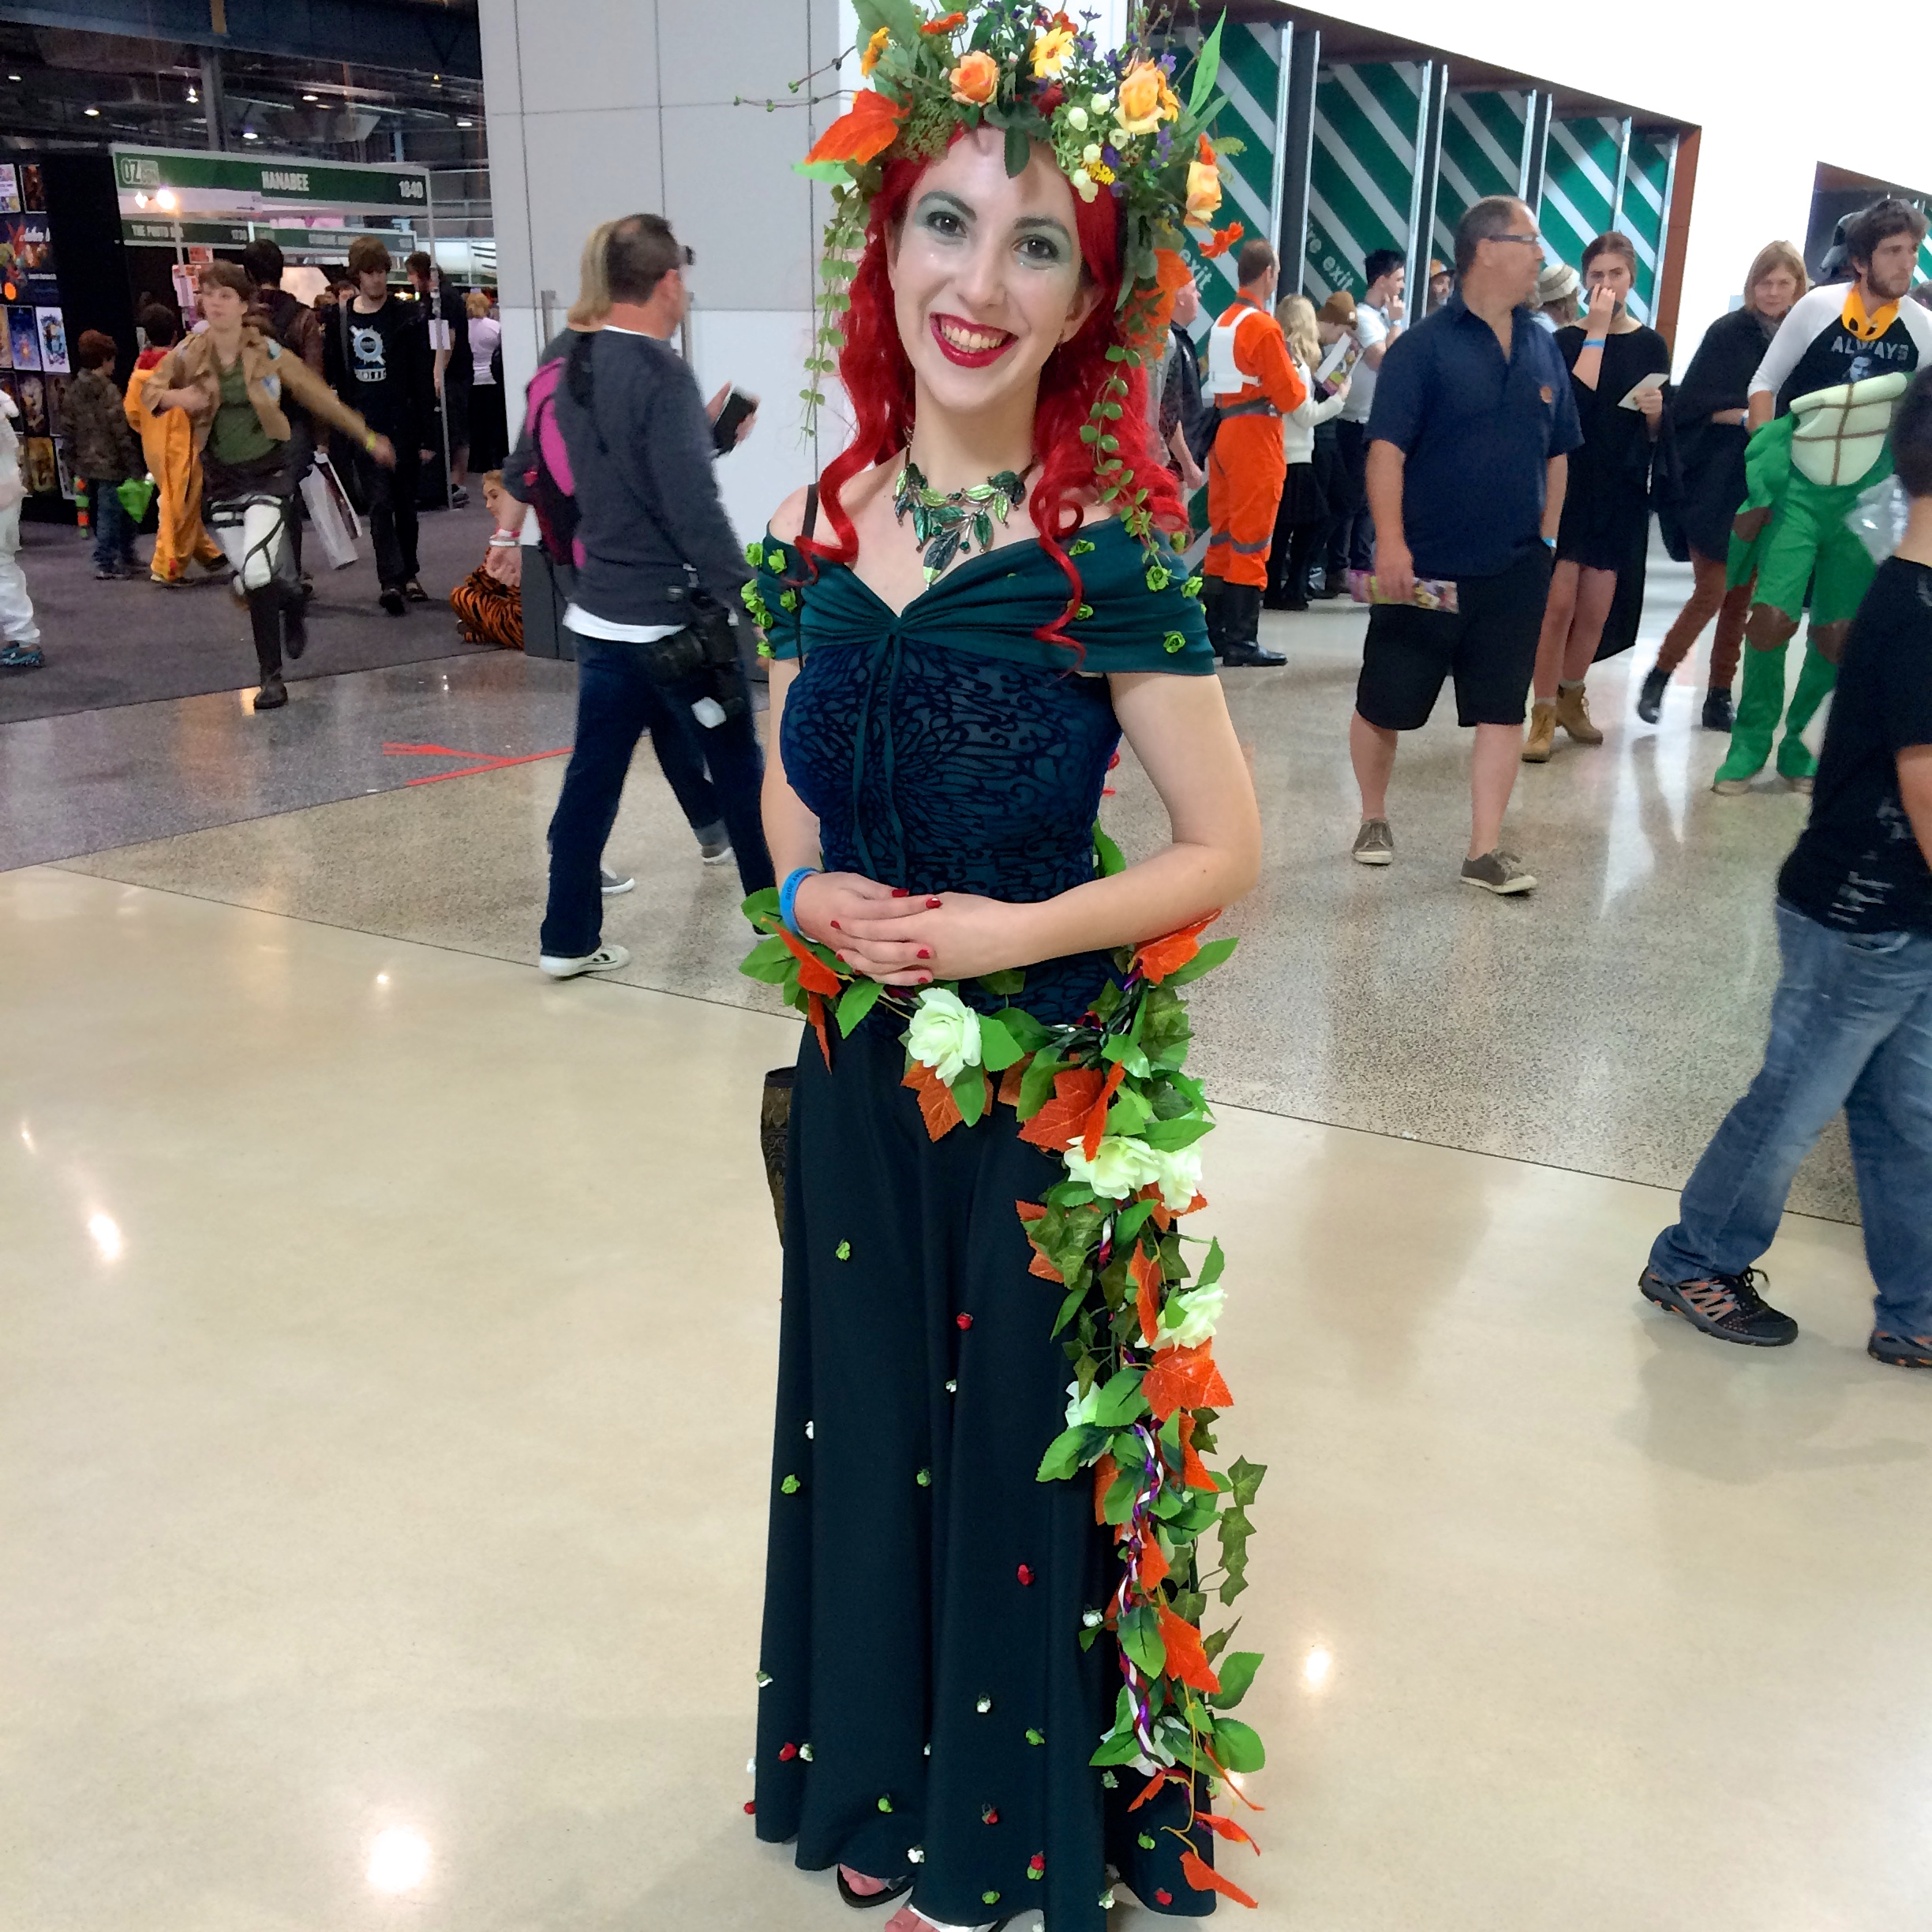 Poison Ivy meets Flower Power.